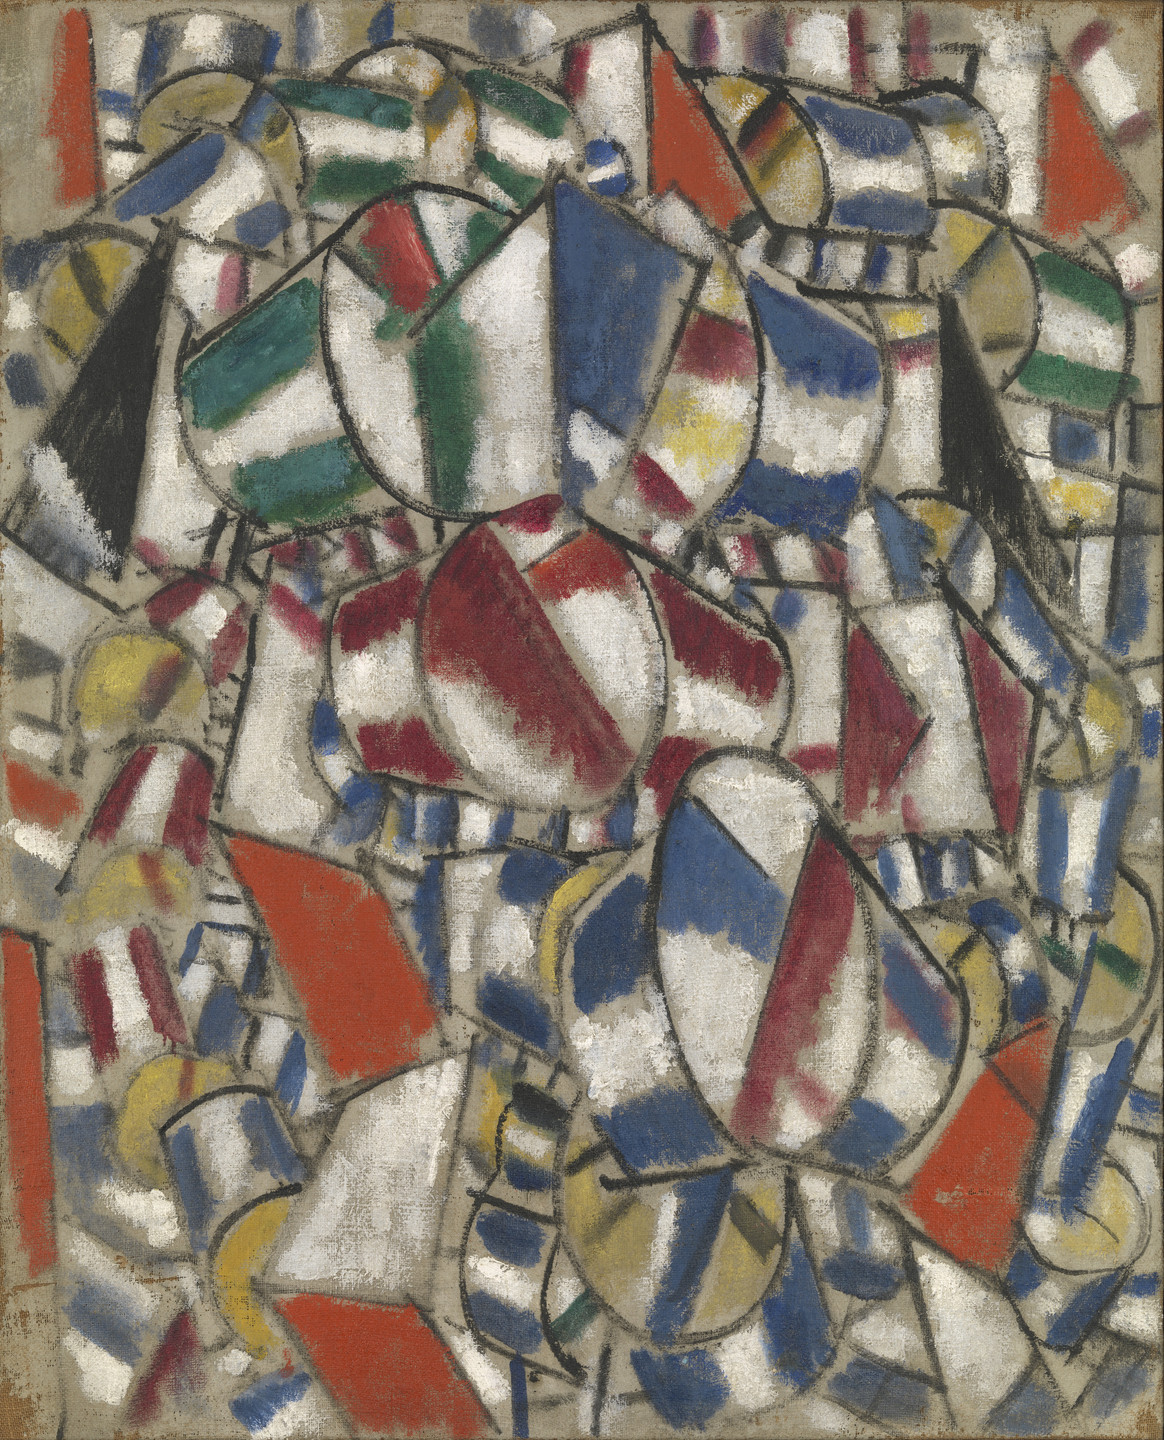 Fernand Léger. Contrast of Forms. 1913